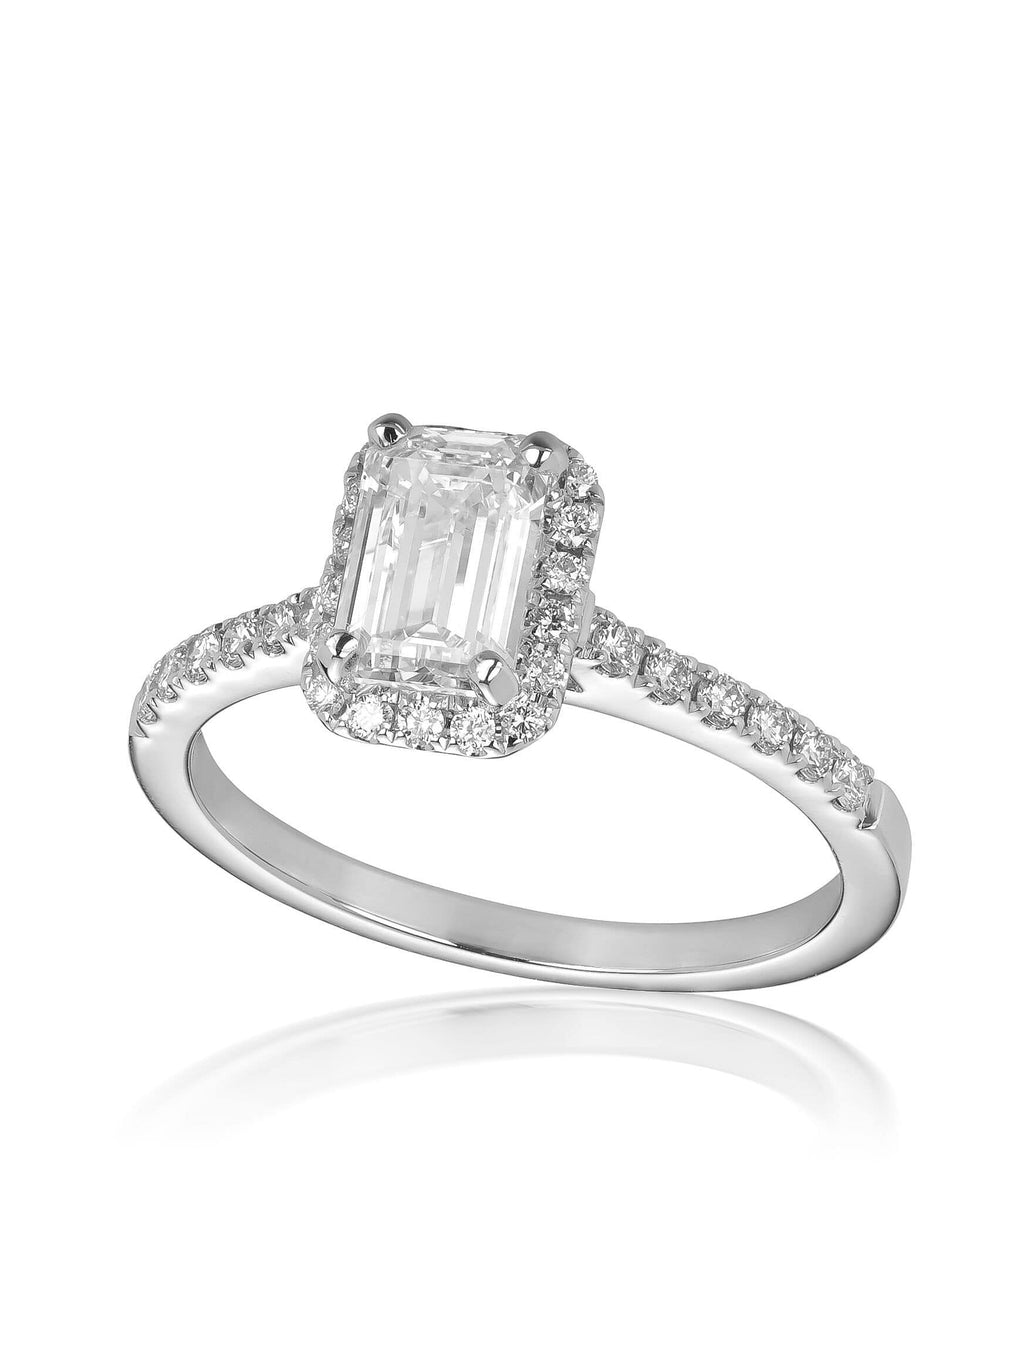 Royal Emerald Cut Diamond Engagement Ring